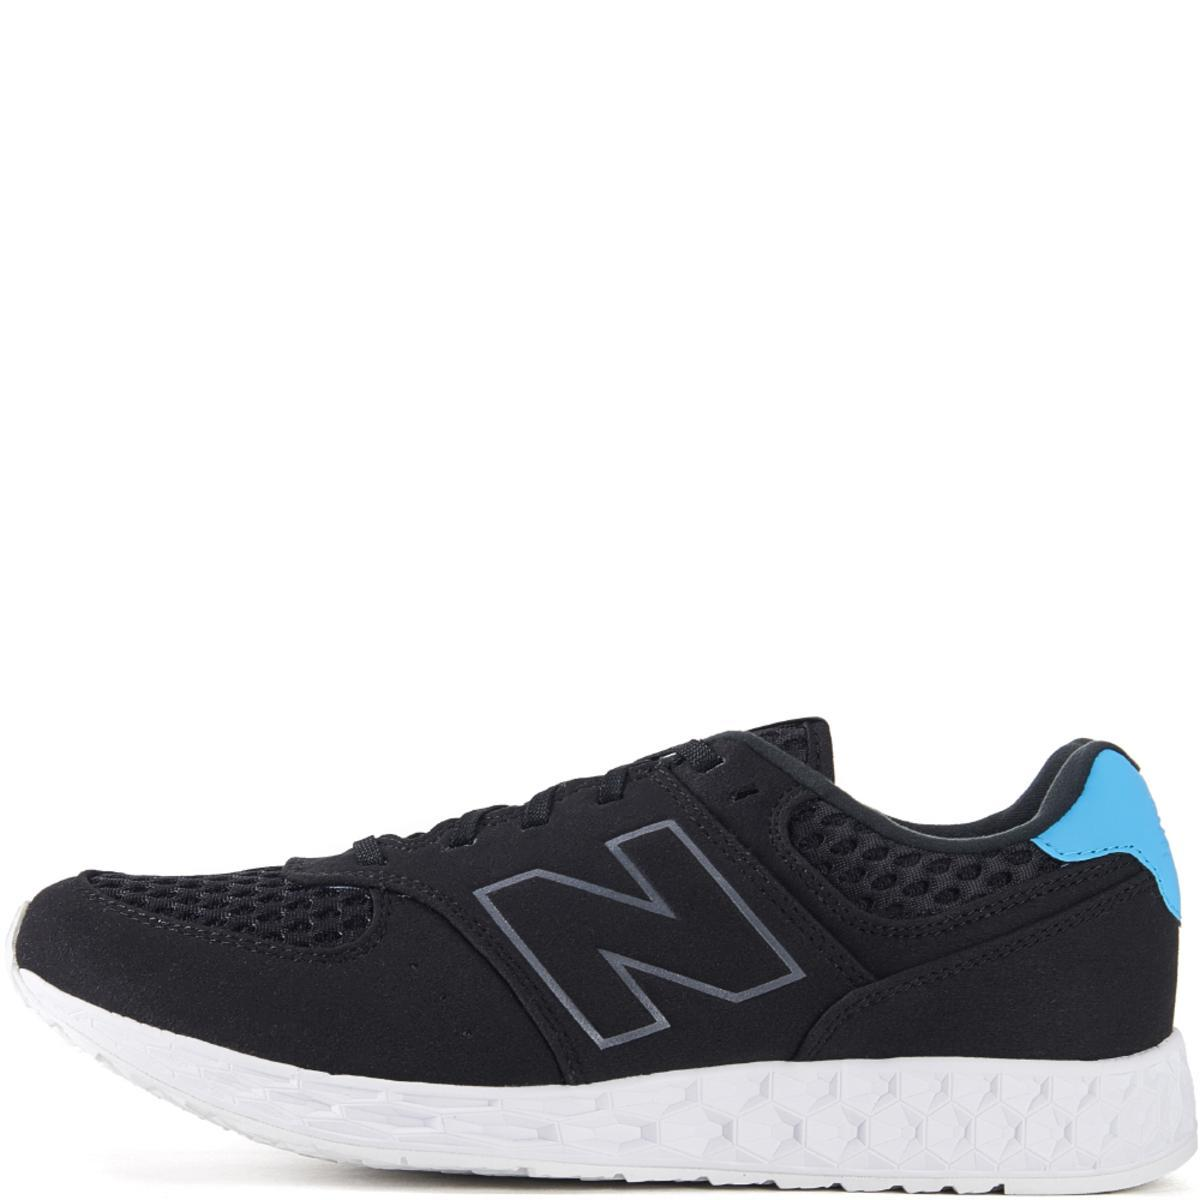 New Balance Unisex: 574 Fresh Foam Breathe Black Running Shoes